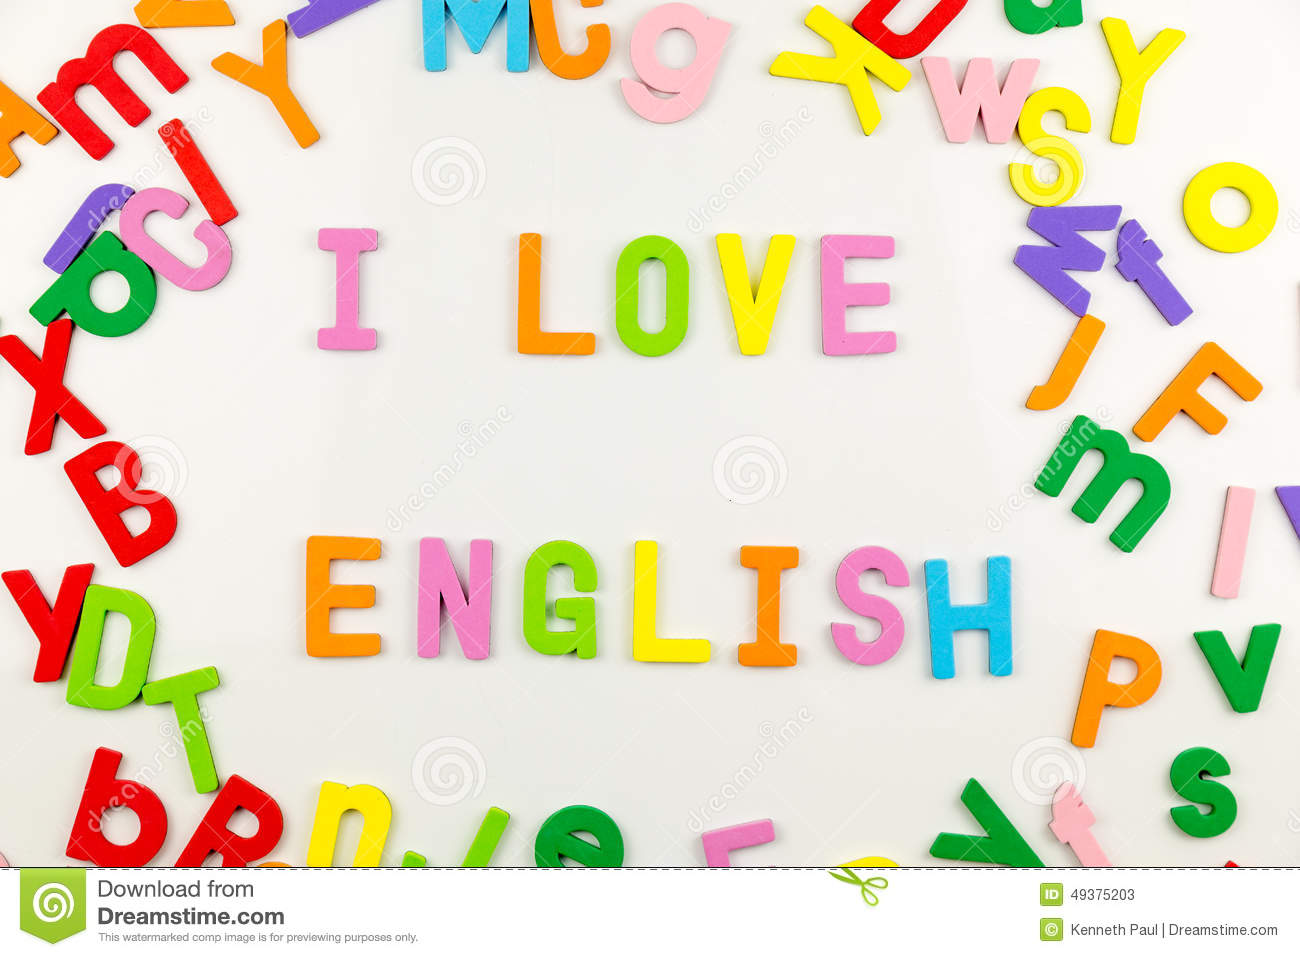 Stock Photo Alphabet Magnets Whiteboard Colorful Spelling I Love English Image49375203 on Preschool Color Green